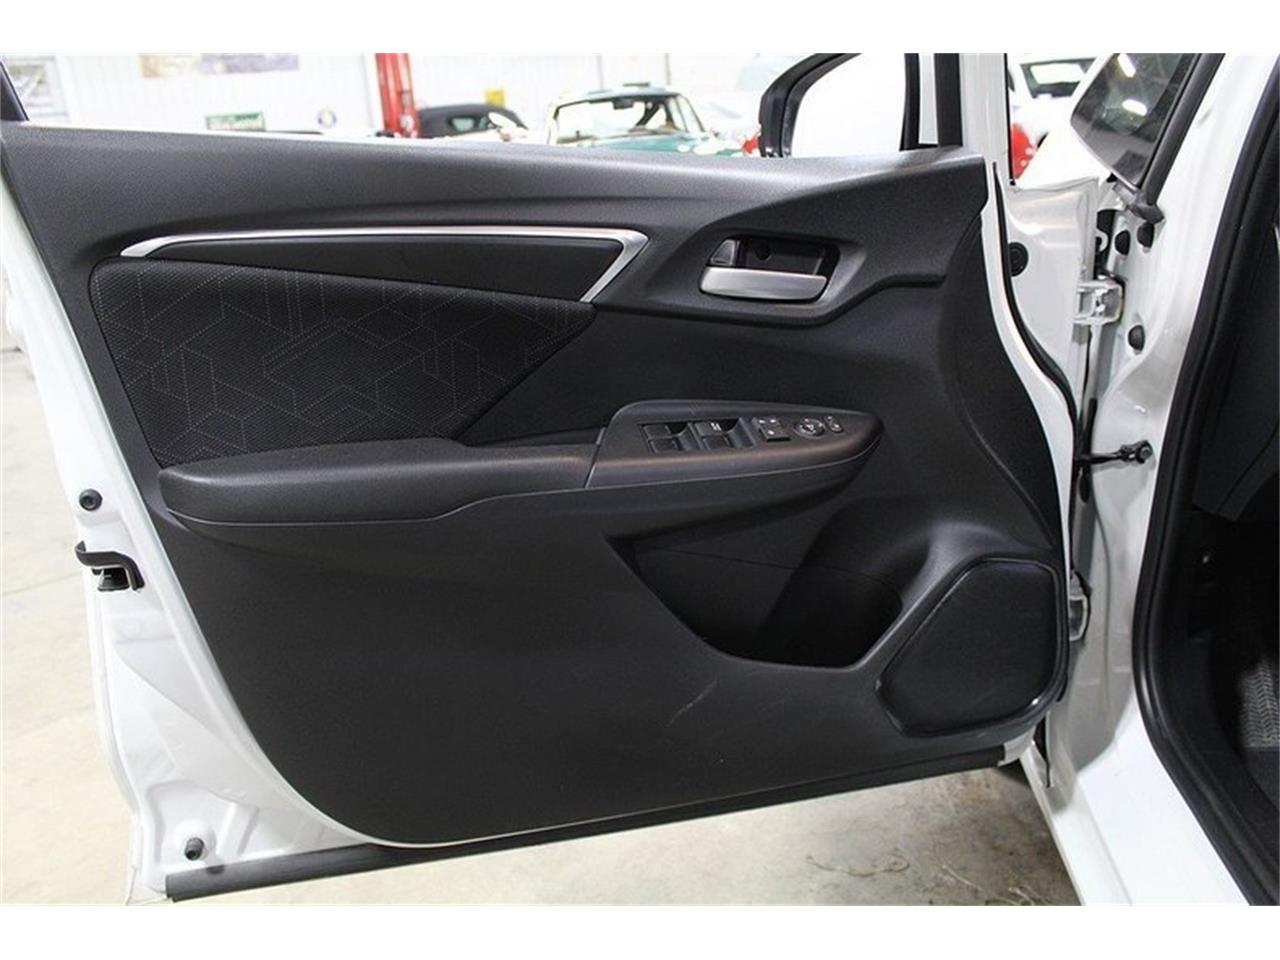 Large Picture of 2015 Honda Fit located in Kentwood Michigan Offered by GR Auto Gallery - MO4N